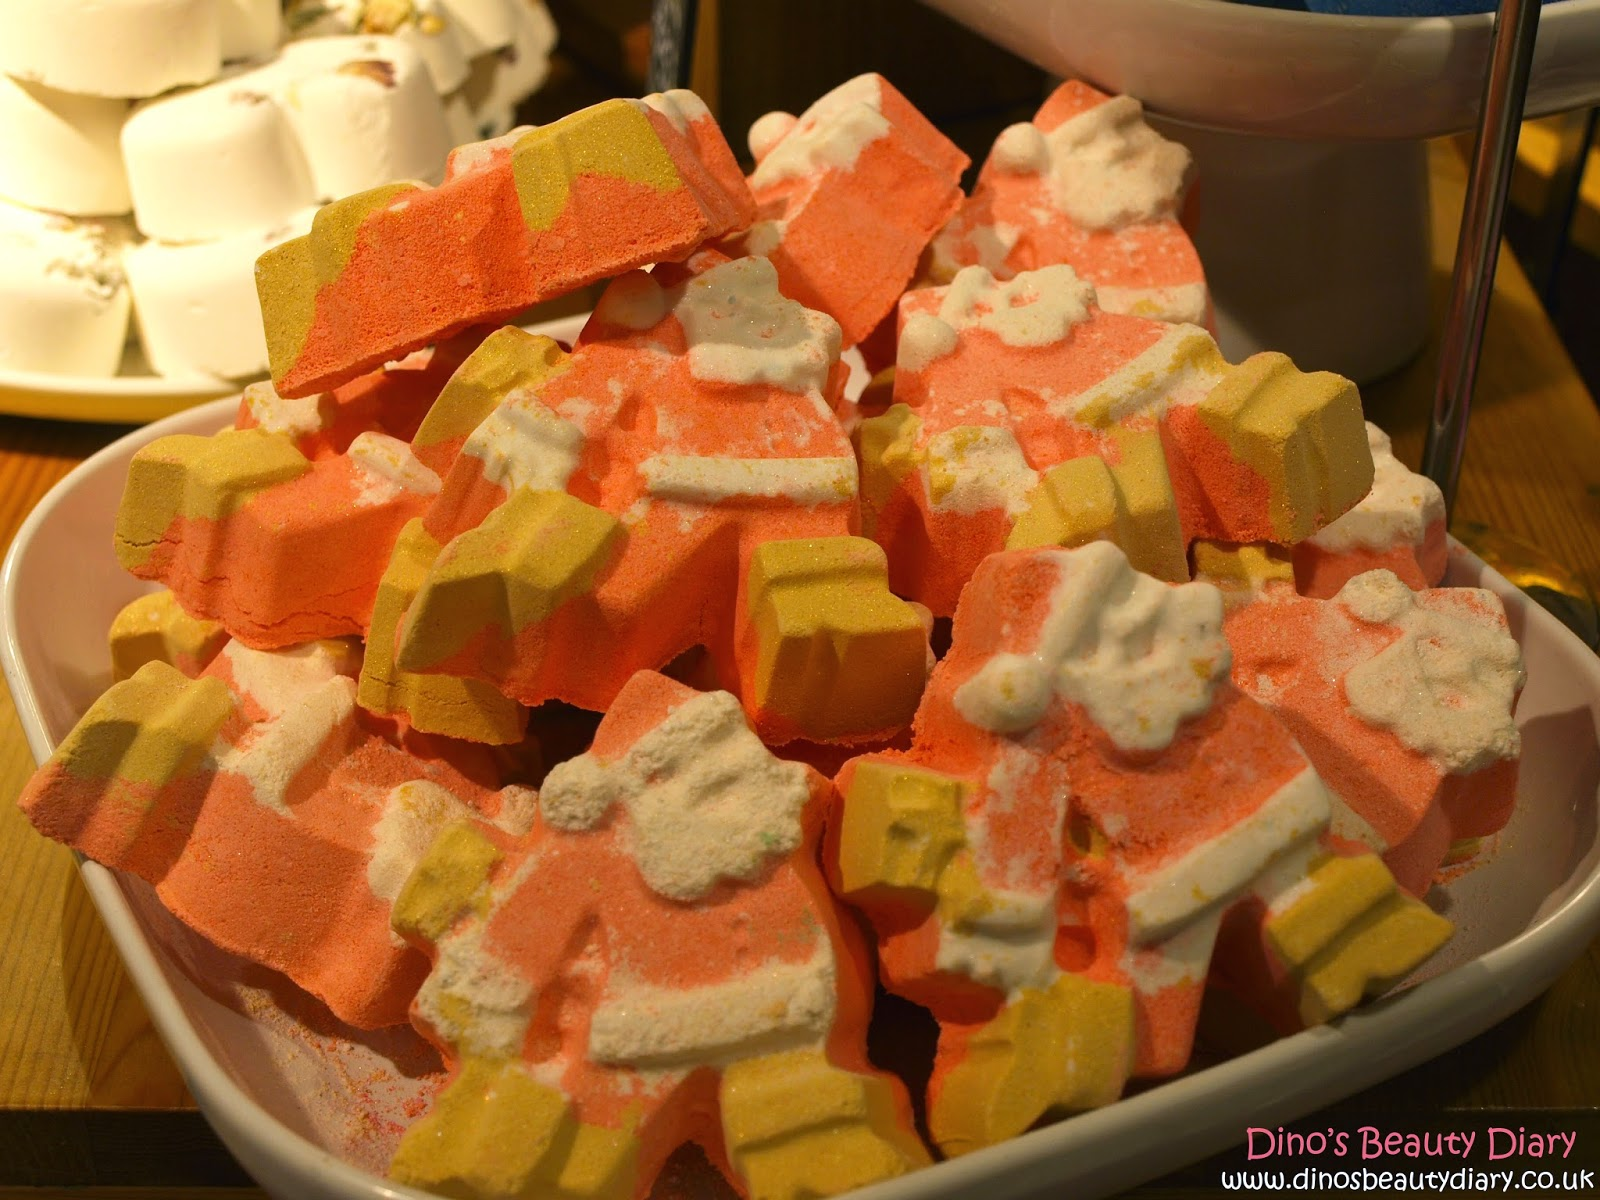 Dino's Beauty Diary - Lush Nottingham Bloggers Event - Dashing Santa bath bombs